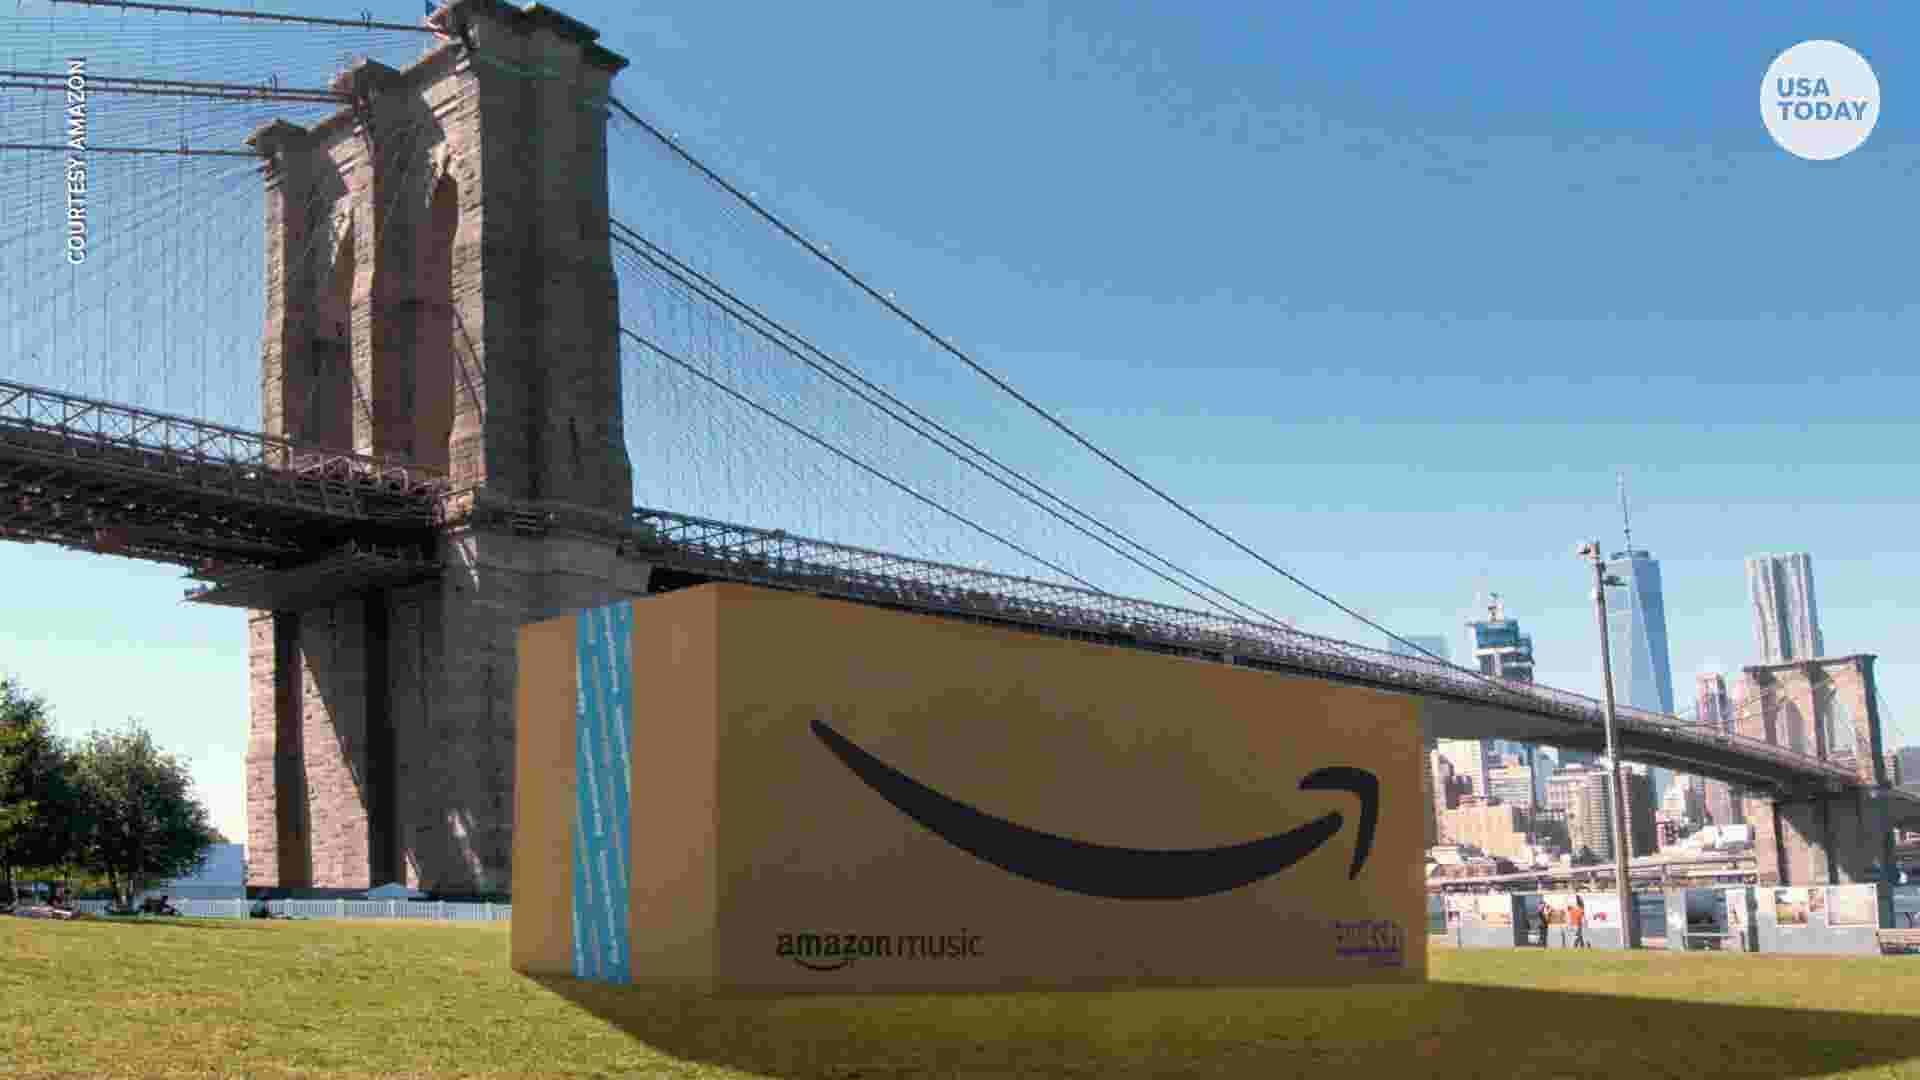 Is Amazon taking over the world?